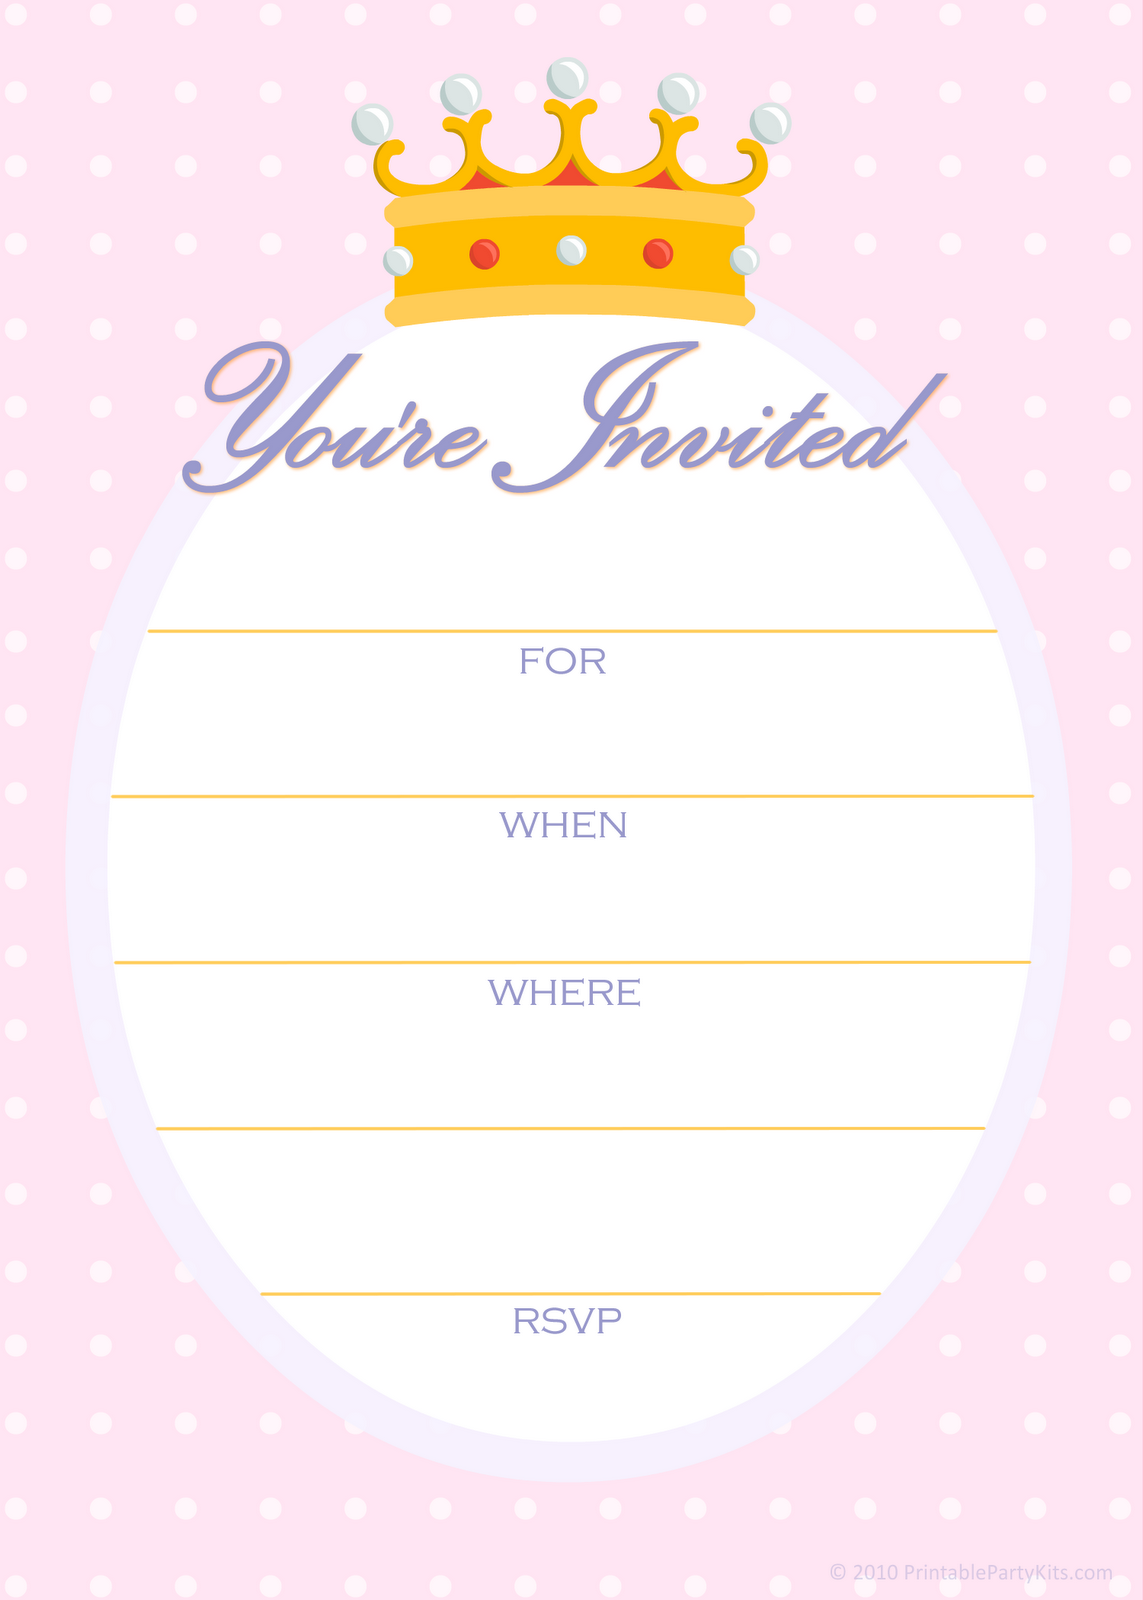 party invitation template to see it full size and download it